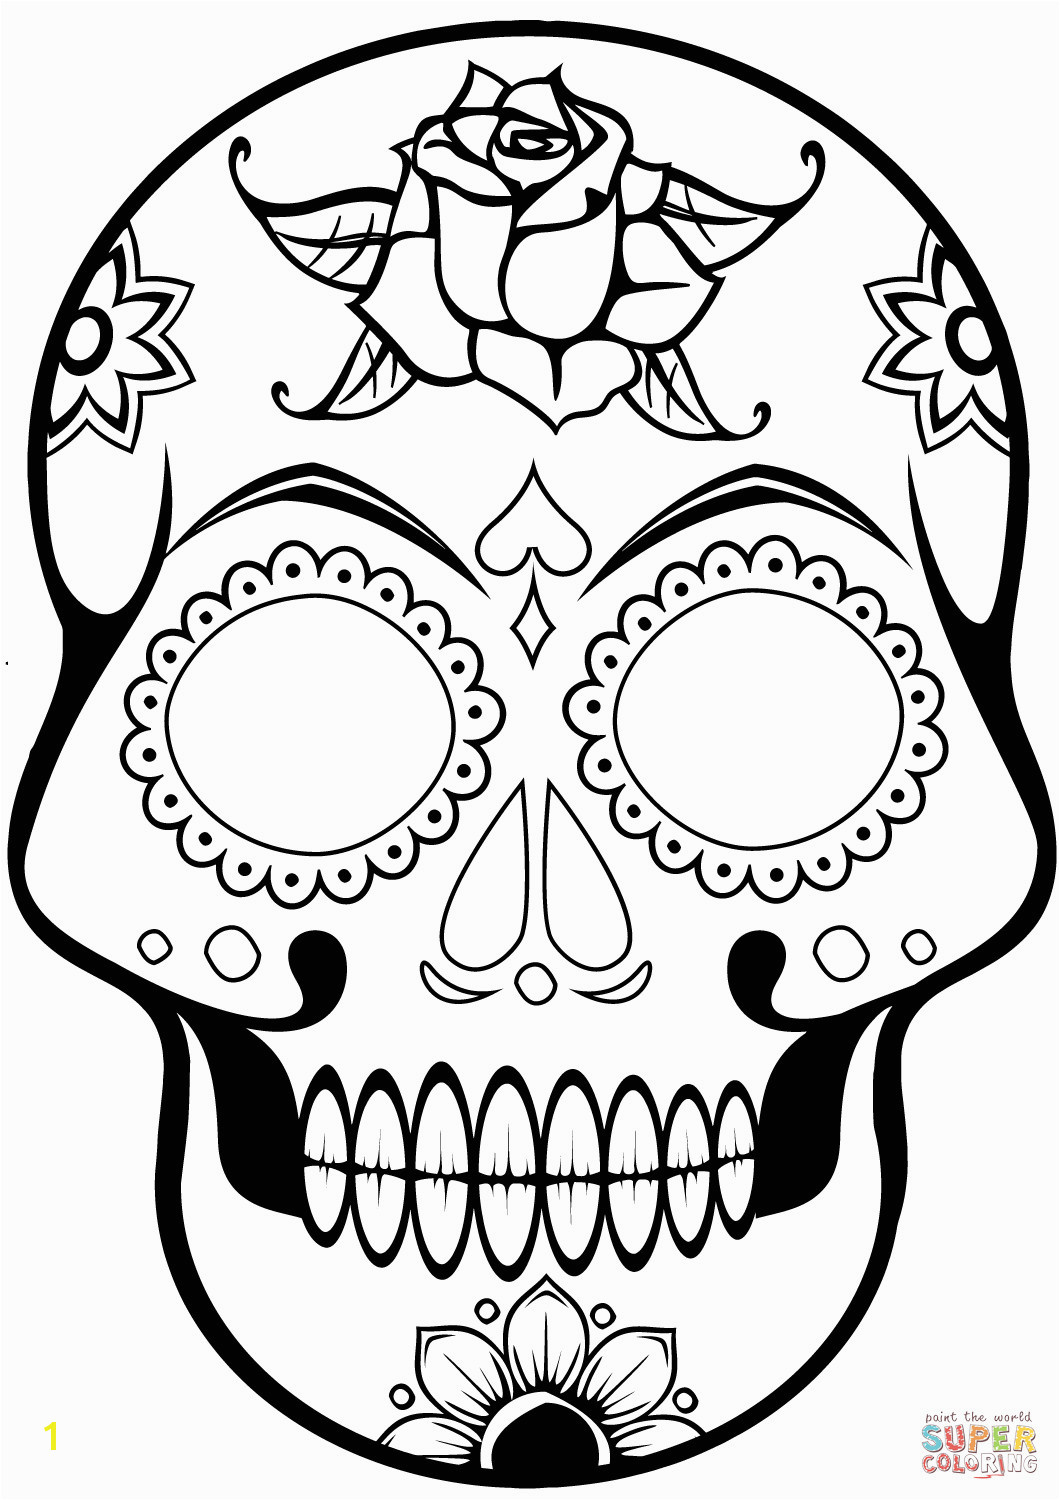 Approved Sugar Skulls Coloring Pages Skull Page Free Printable For Endearing